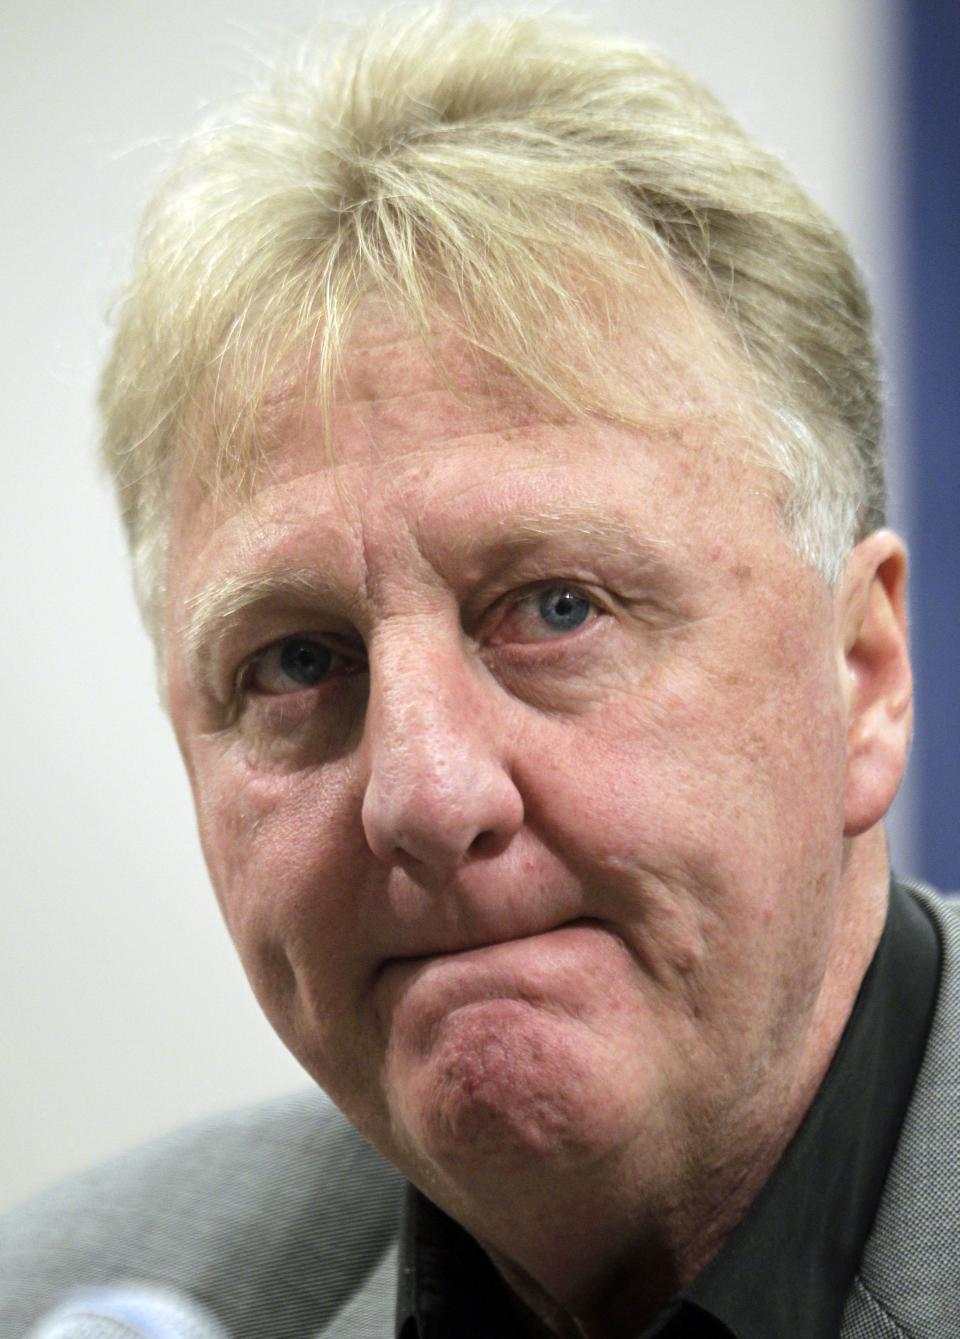 Larry Bird talks about stepping down as president of the Indiana Pacers during an announcement by the NBA basketball team in Indianapolis, Wednesday, June 27, 2012. Donnie Walsh was named as president and Kevin Pritchard as general manager. (AP Photo/Michael Conroy)